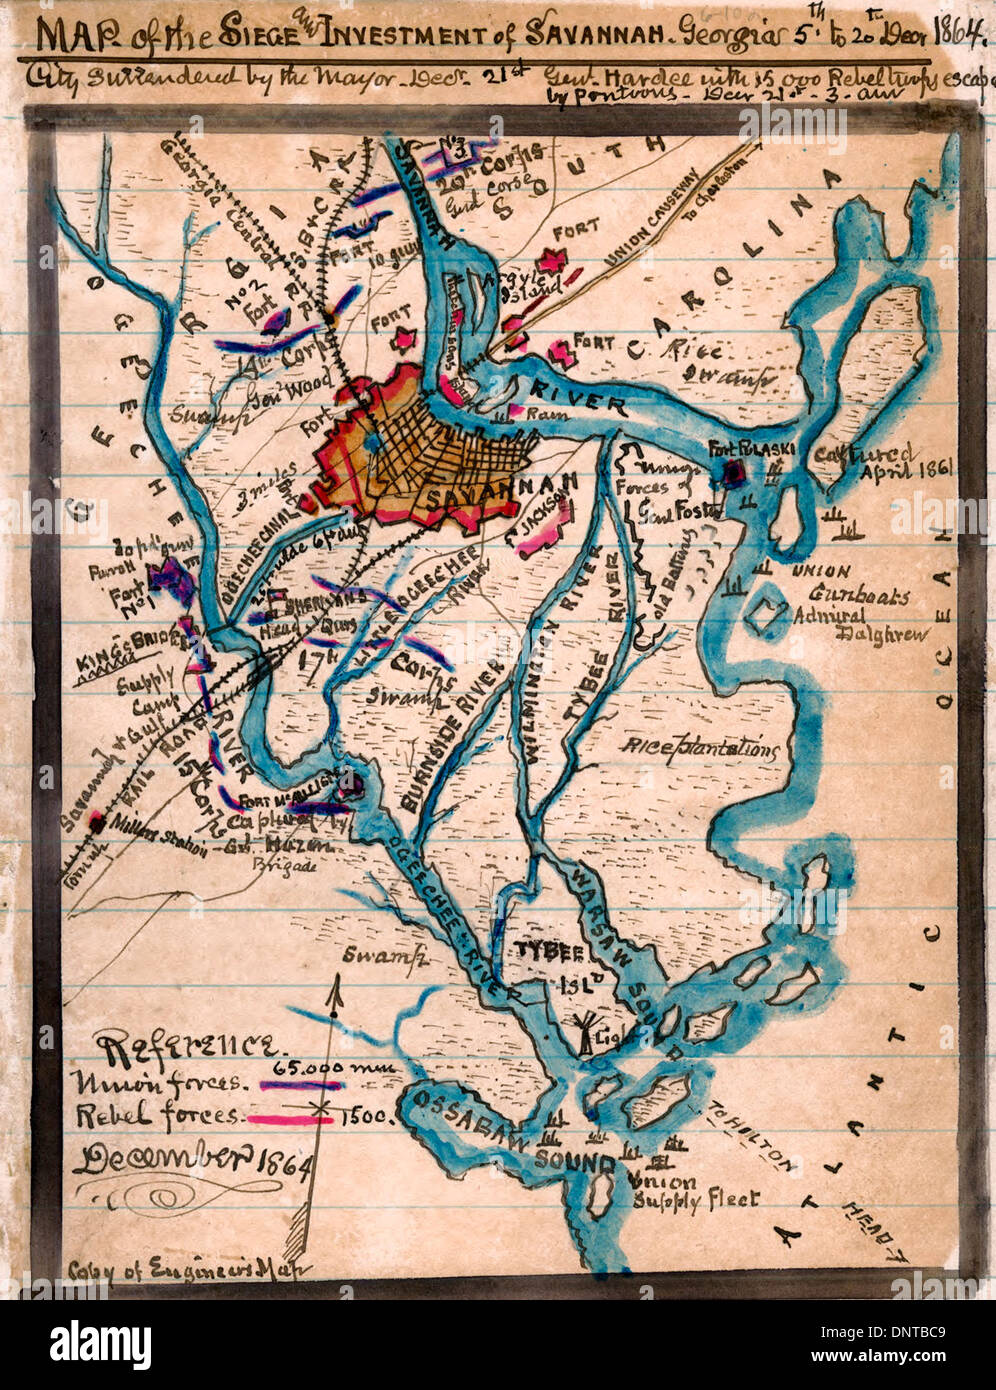 Map Of The Siege And Investment Of Savannah Georgia 5th To 20th